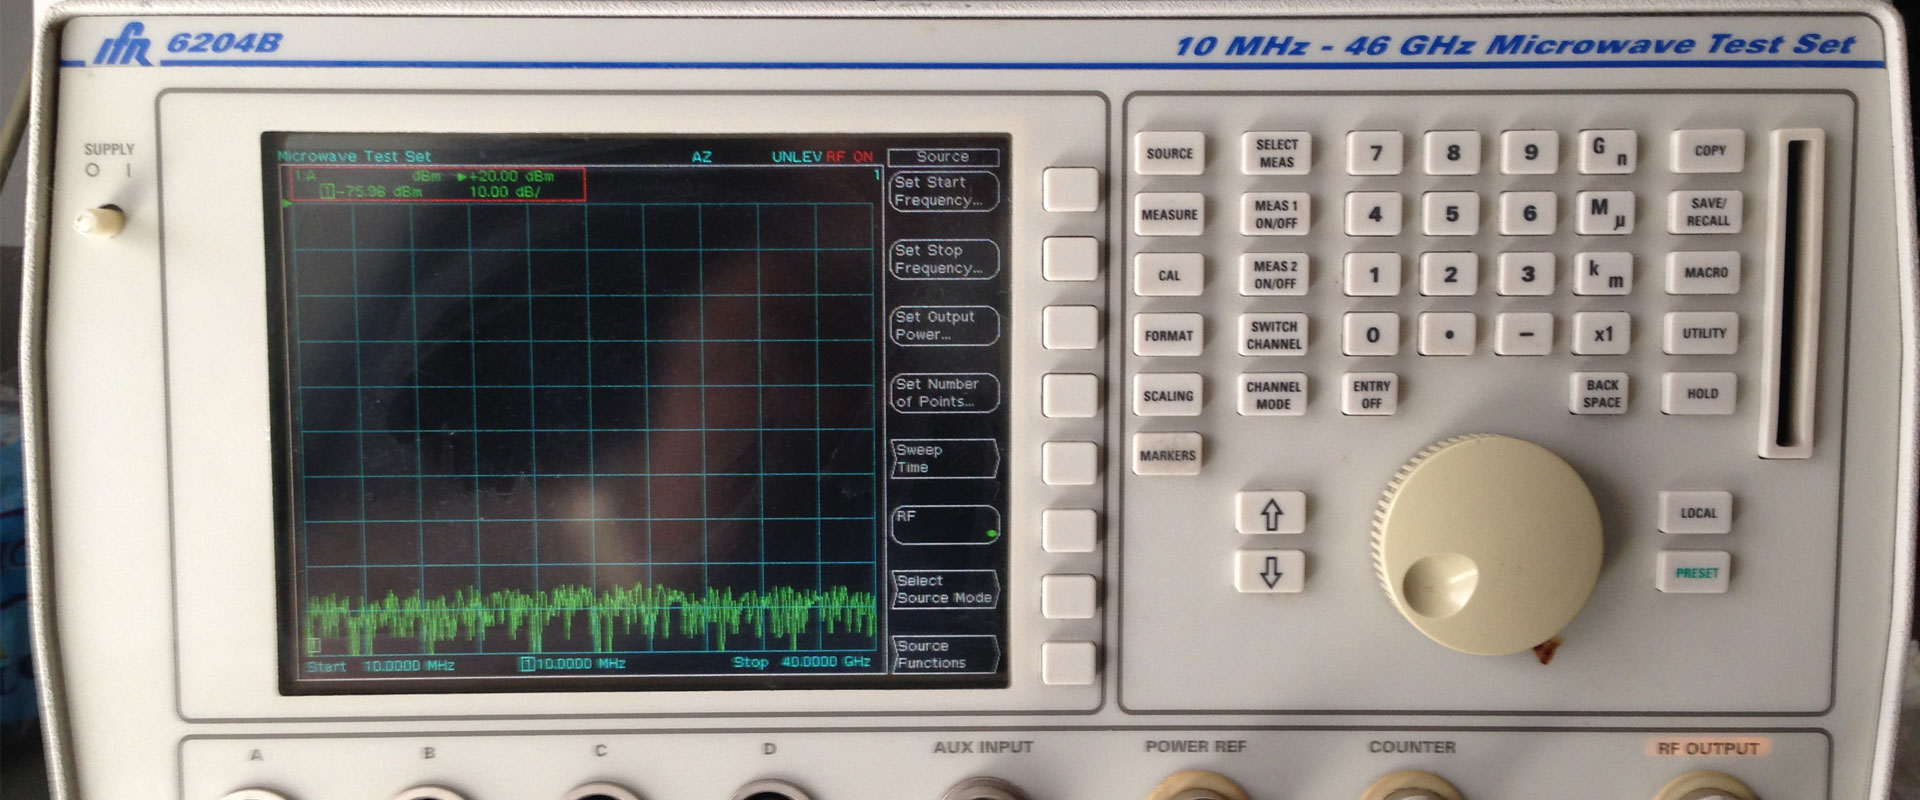 Test set 46 GHz IFR 6204B